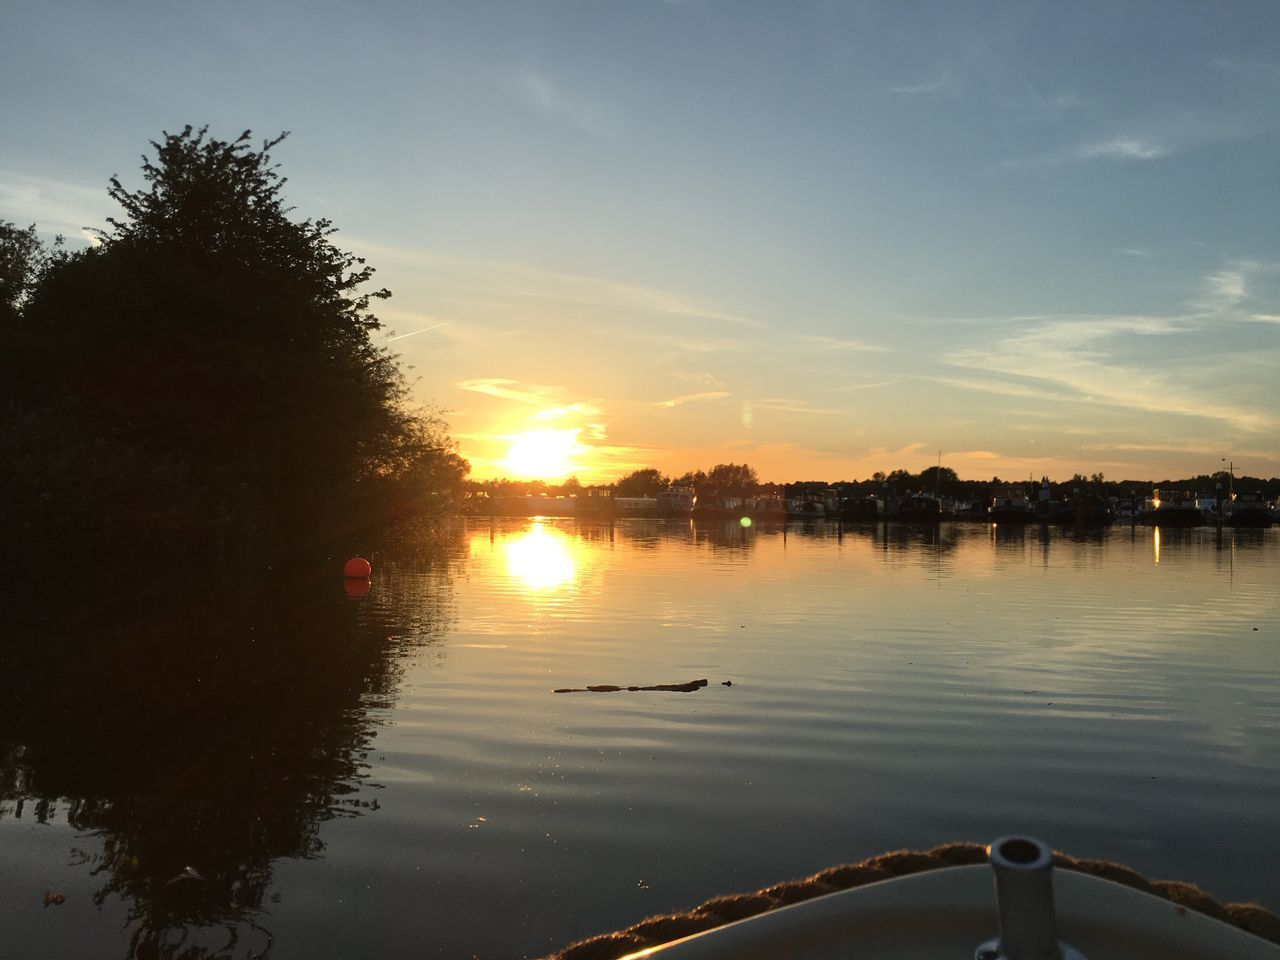 water, sunset, reflection, nature, beauty in nature, scenics, sky, tranquil scene, no people, outdoors, sun, silhouette, nautical vessel, lake, tree, day